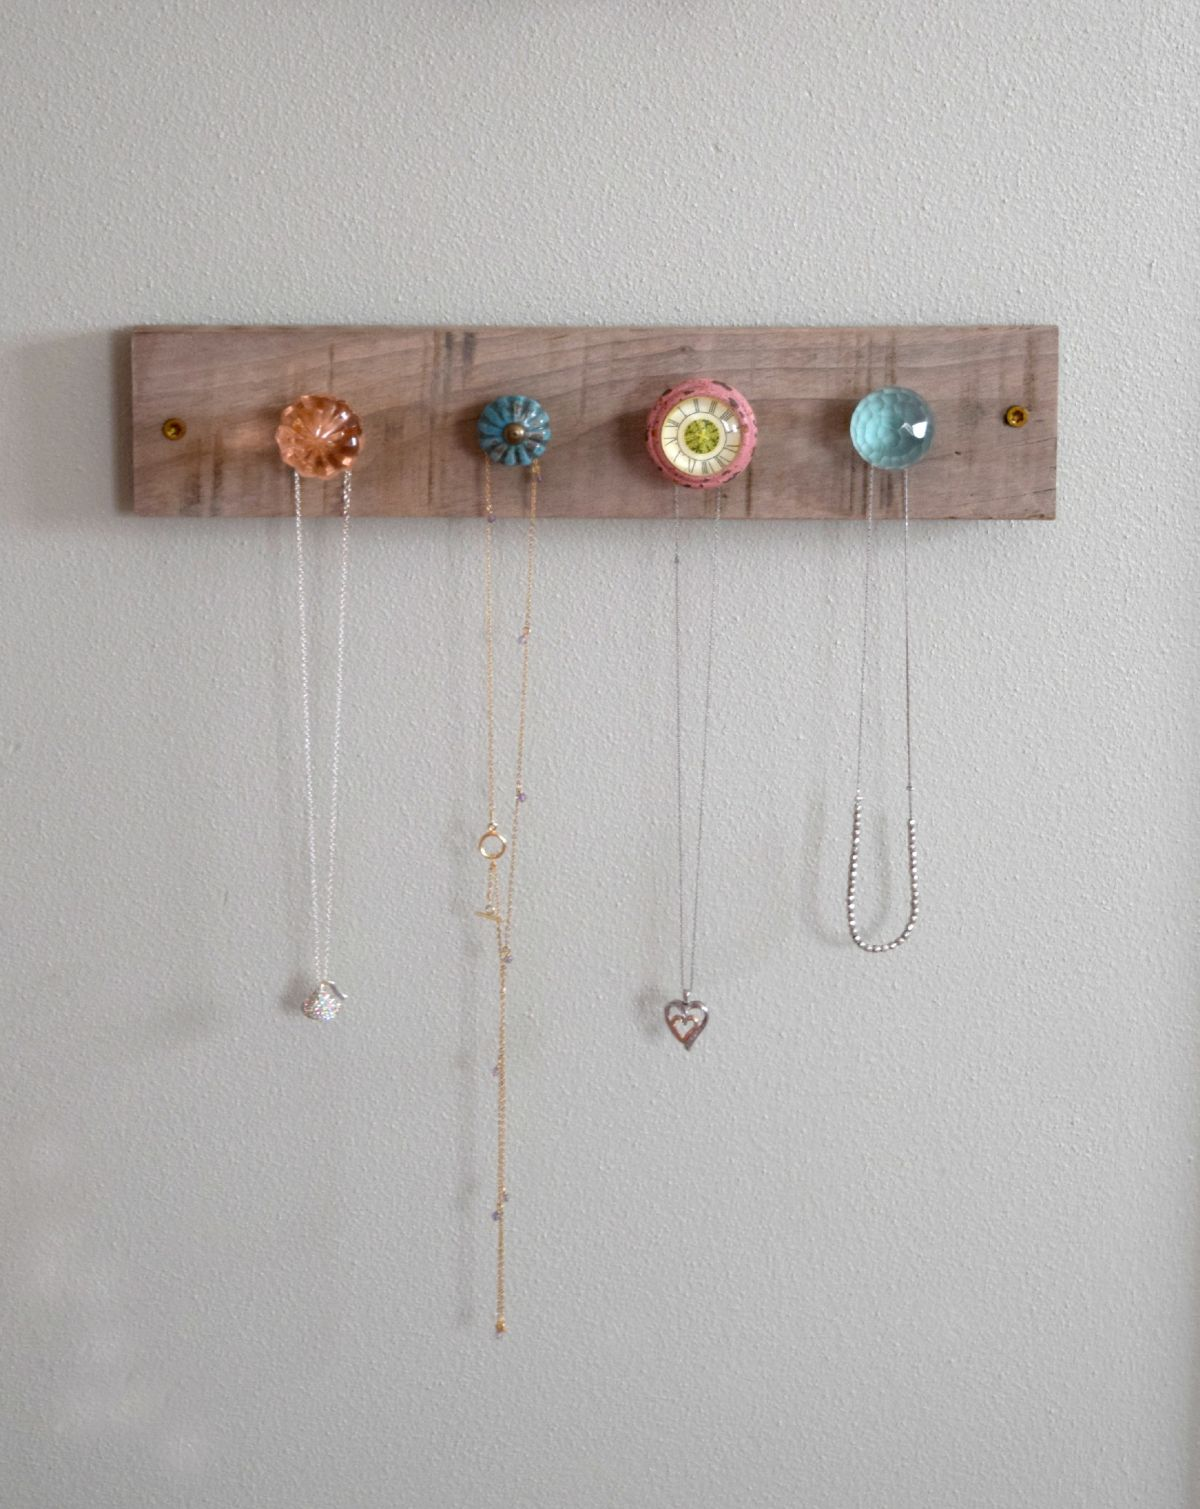 Creative jewelry wall display